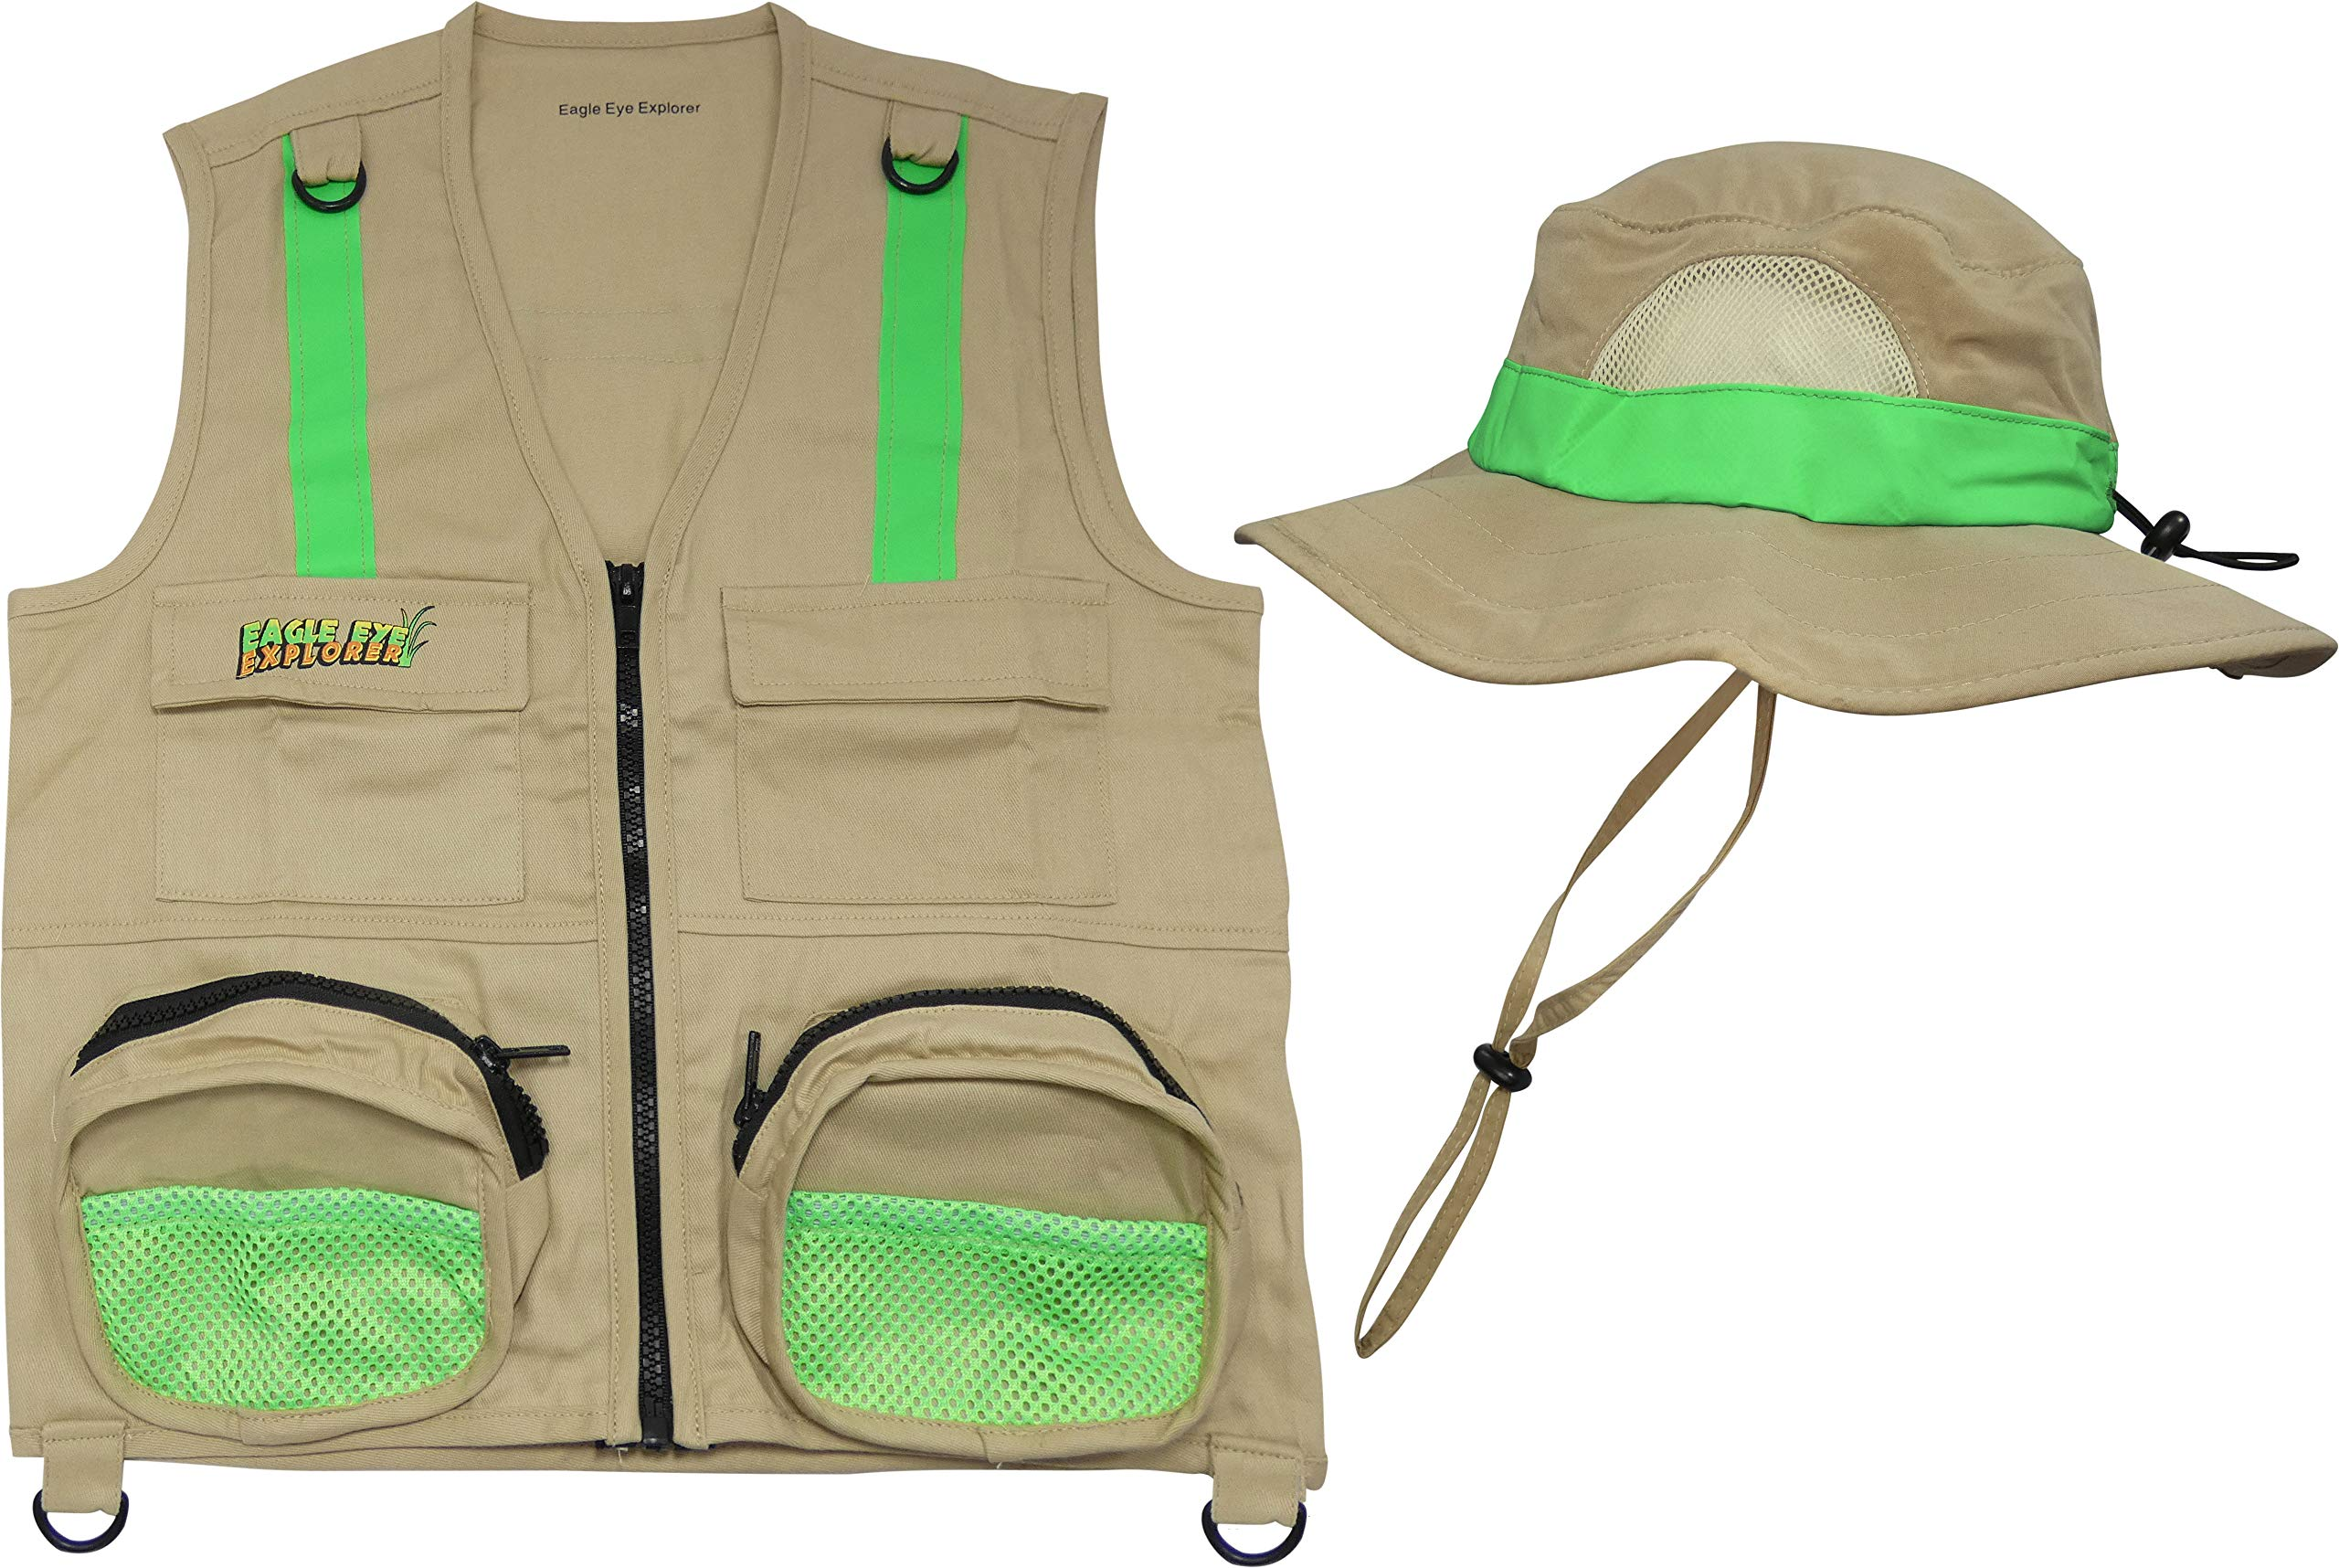 L/XL Combination Set Safe for Boys, Girls & Youth: 1 Tan Cargo Vest for Kids with Reflective Safety Straps & 1 Floppy Bucket Sun Hat with Chin Strap. Color: Tan